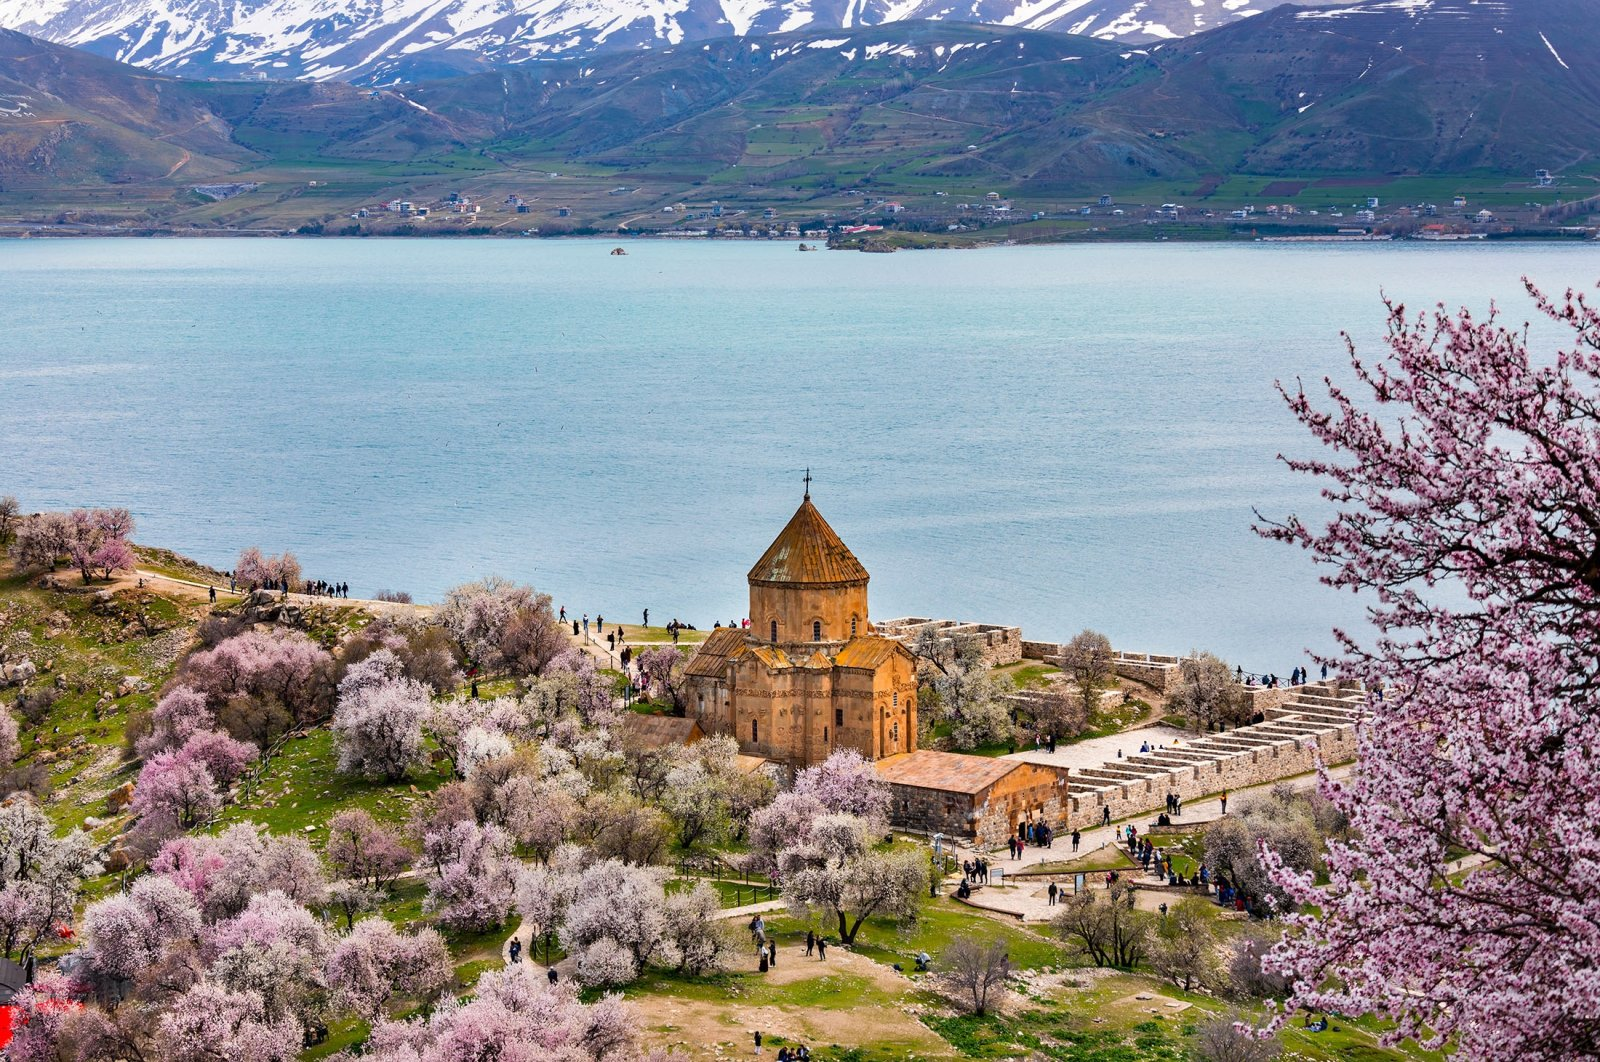 Land of tolerance: 6 most beautiful Christian sites in Turkey